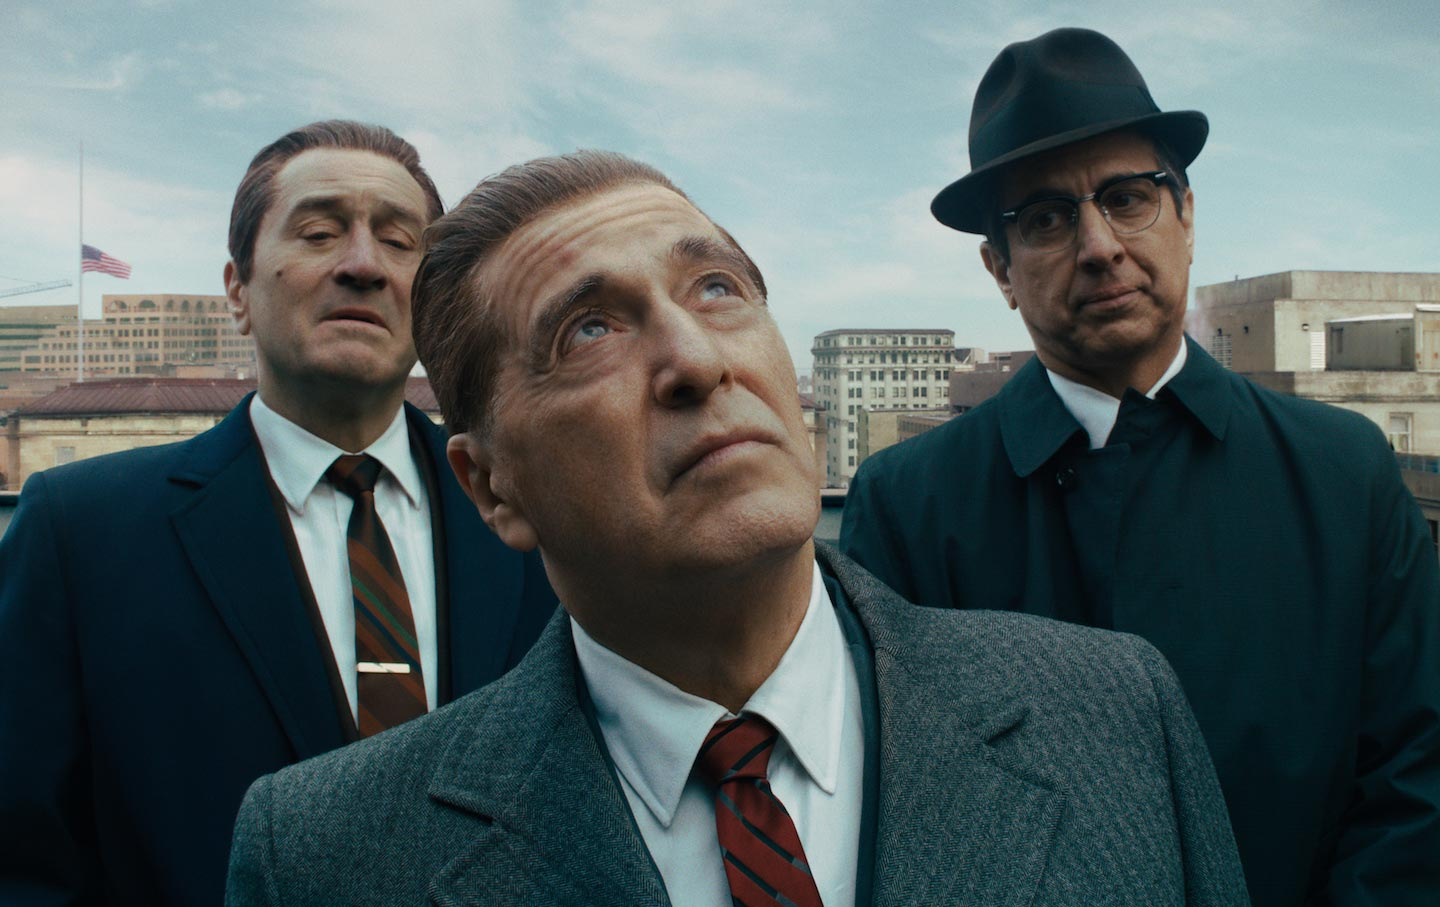 The Irishman Tells the Story of the Corruption of Empire